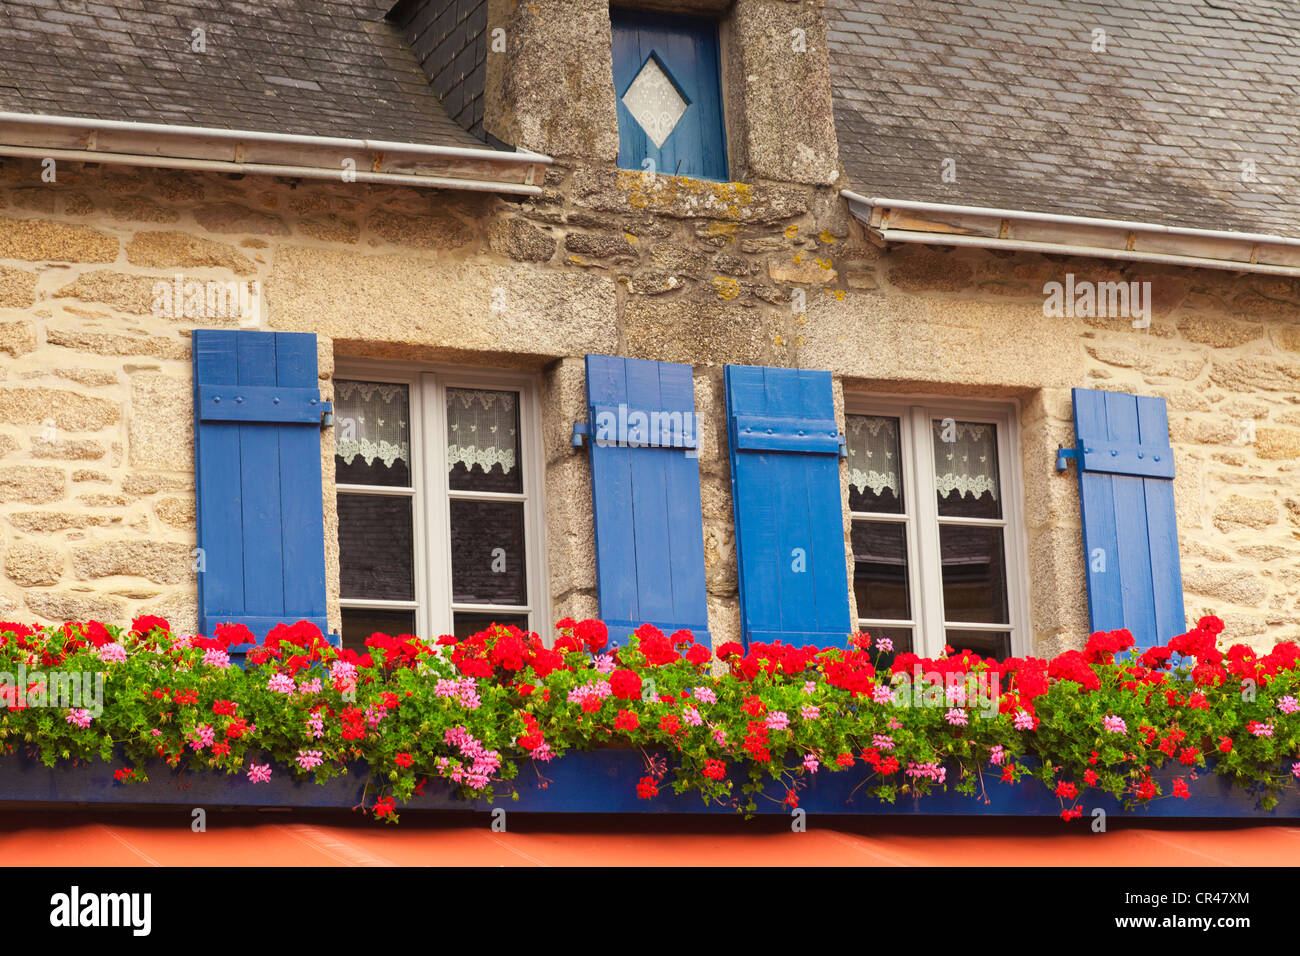 Two windows with lace curtains, blue shuitters and geraniums in window boxes in Concarneau, Brittany, France. - Stock Image